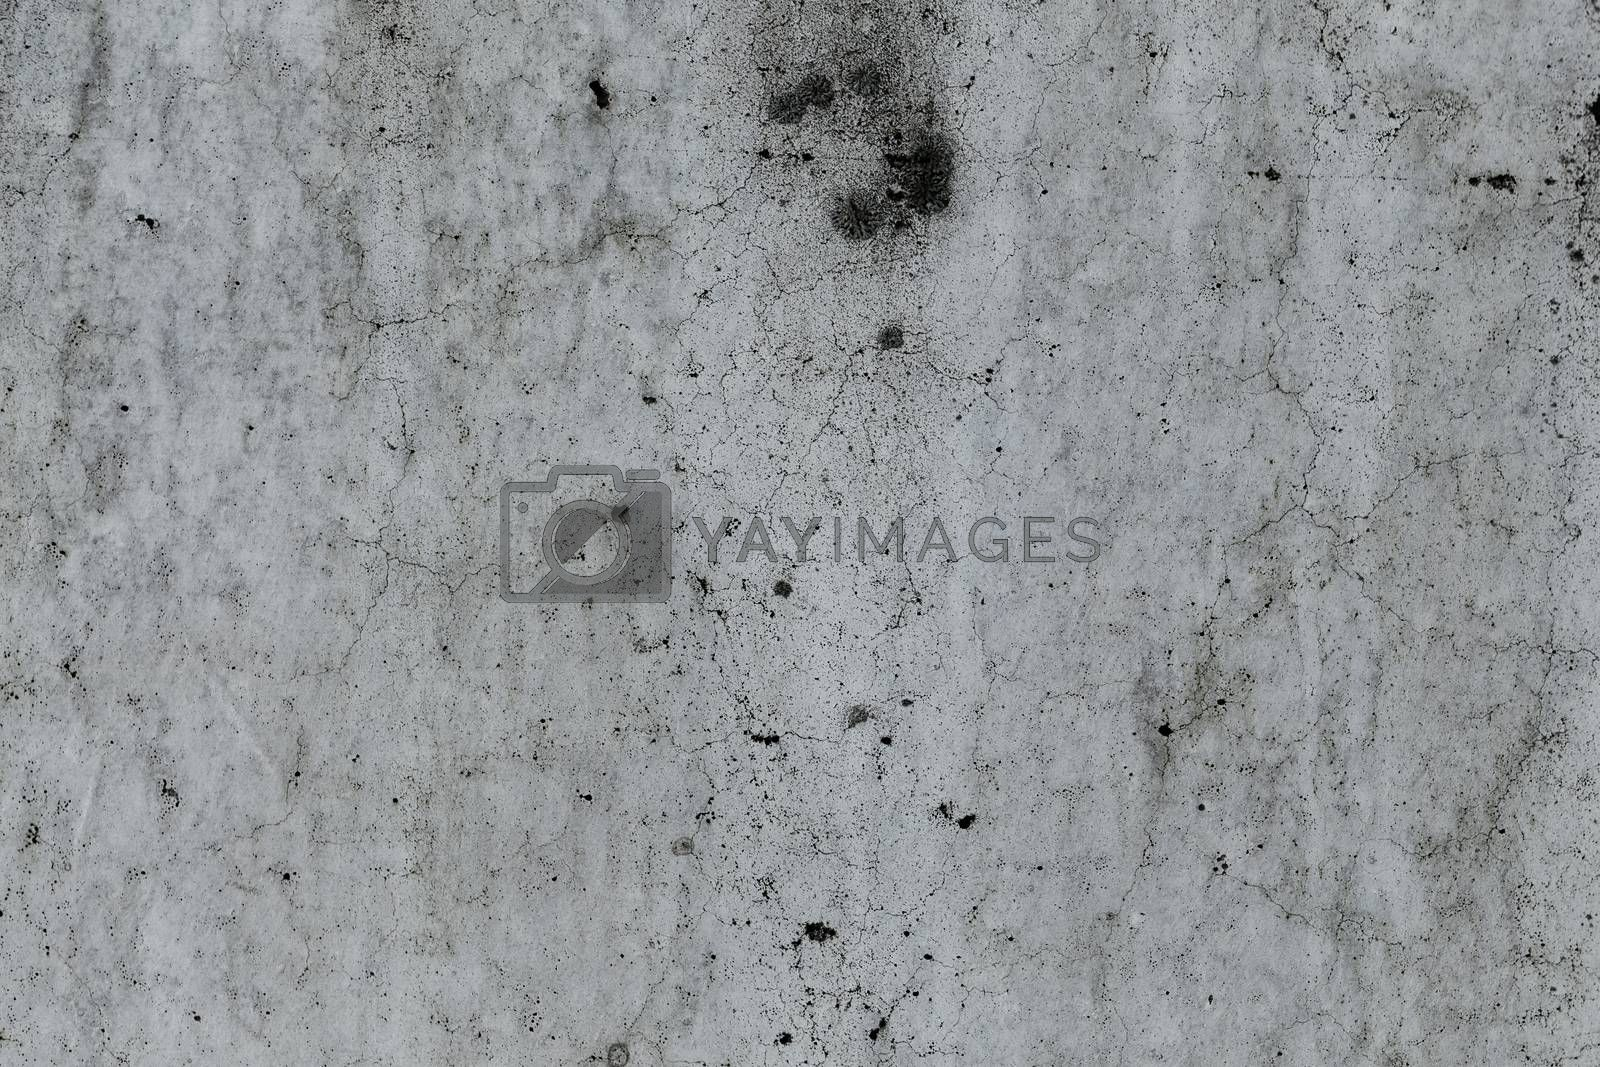 Grungy concrete wall and floor as background by RTsubin